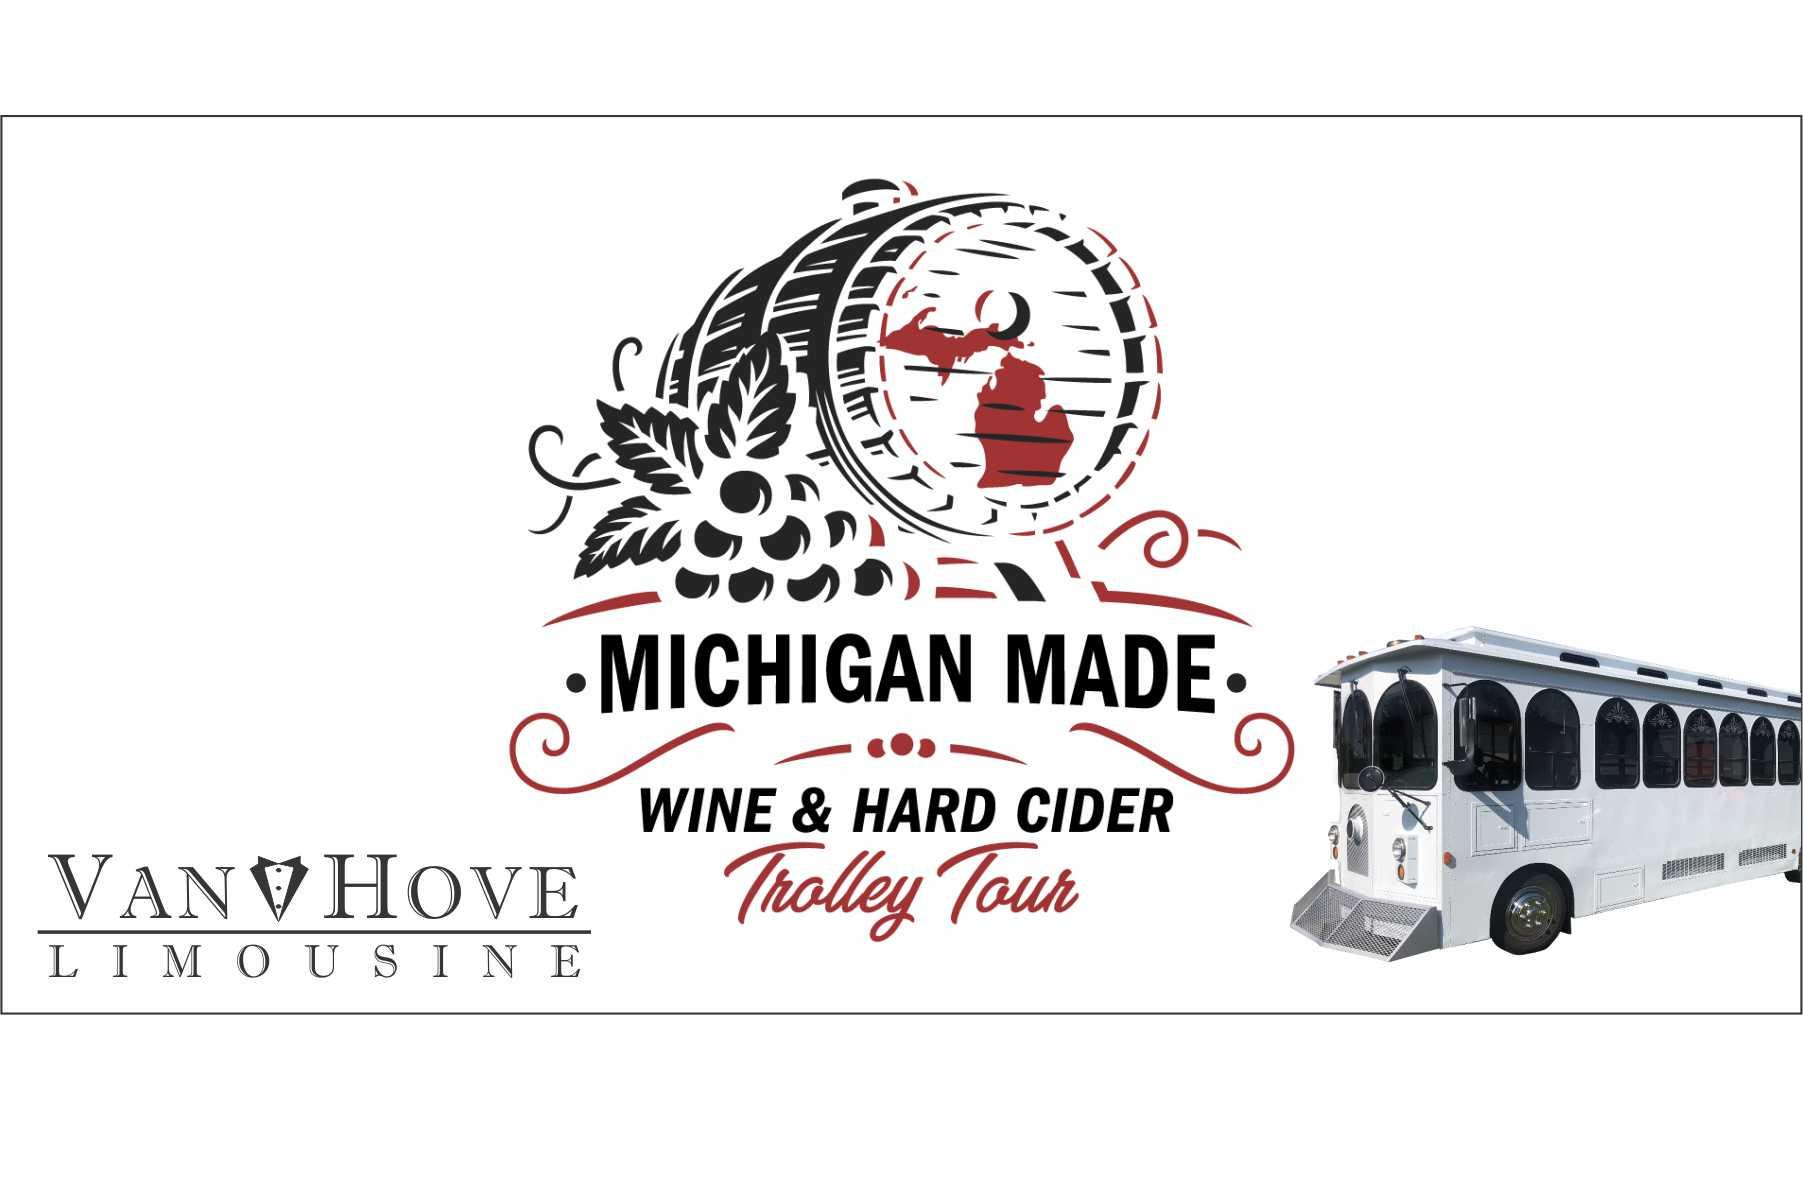 Michigan Made Wine and hard cider trolley tour